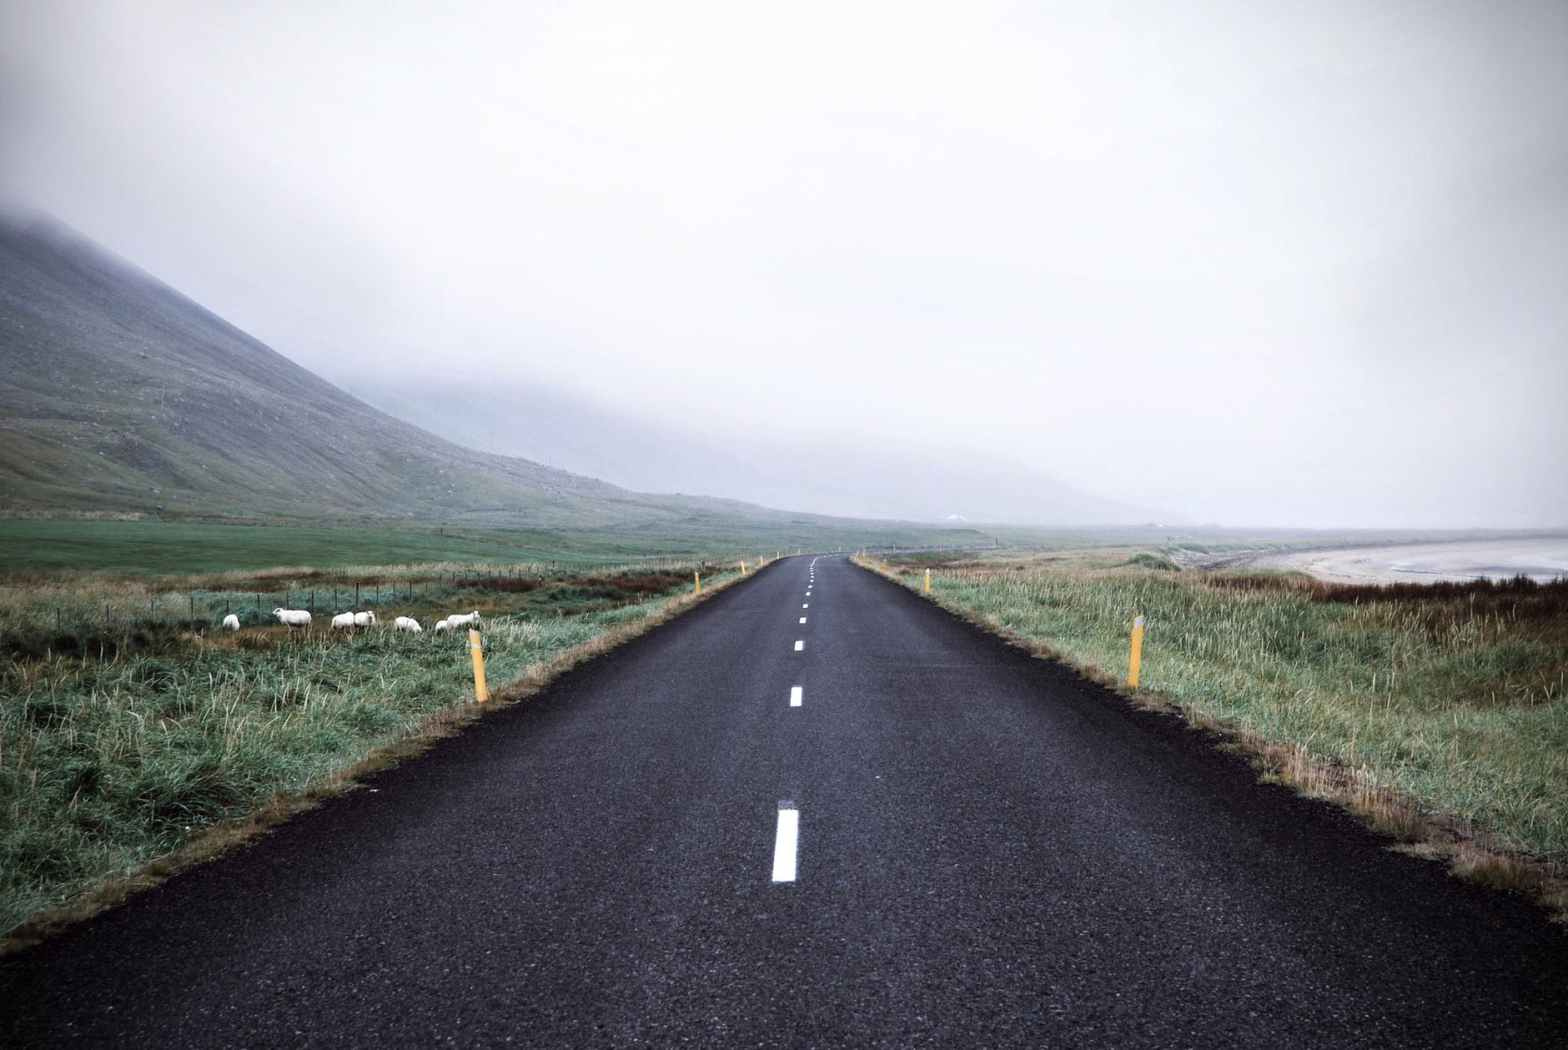 black asphalt road surrounded by green grass